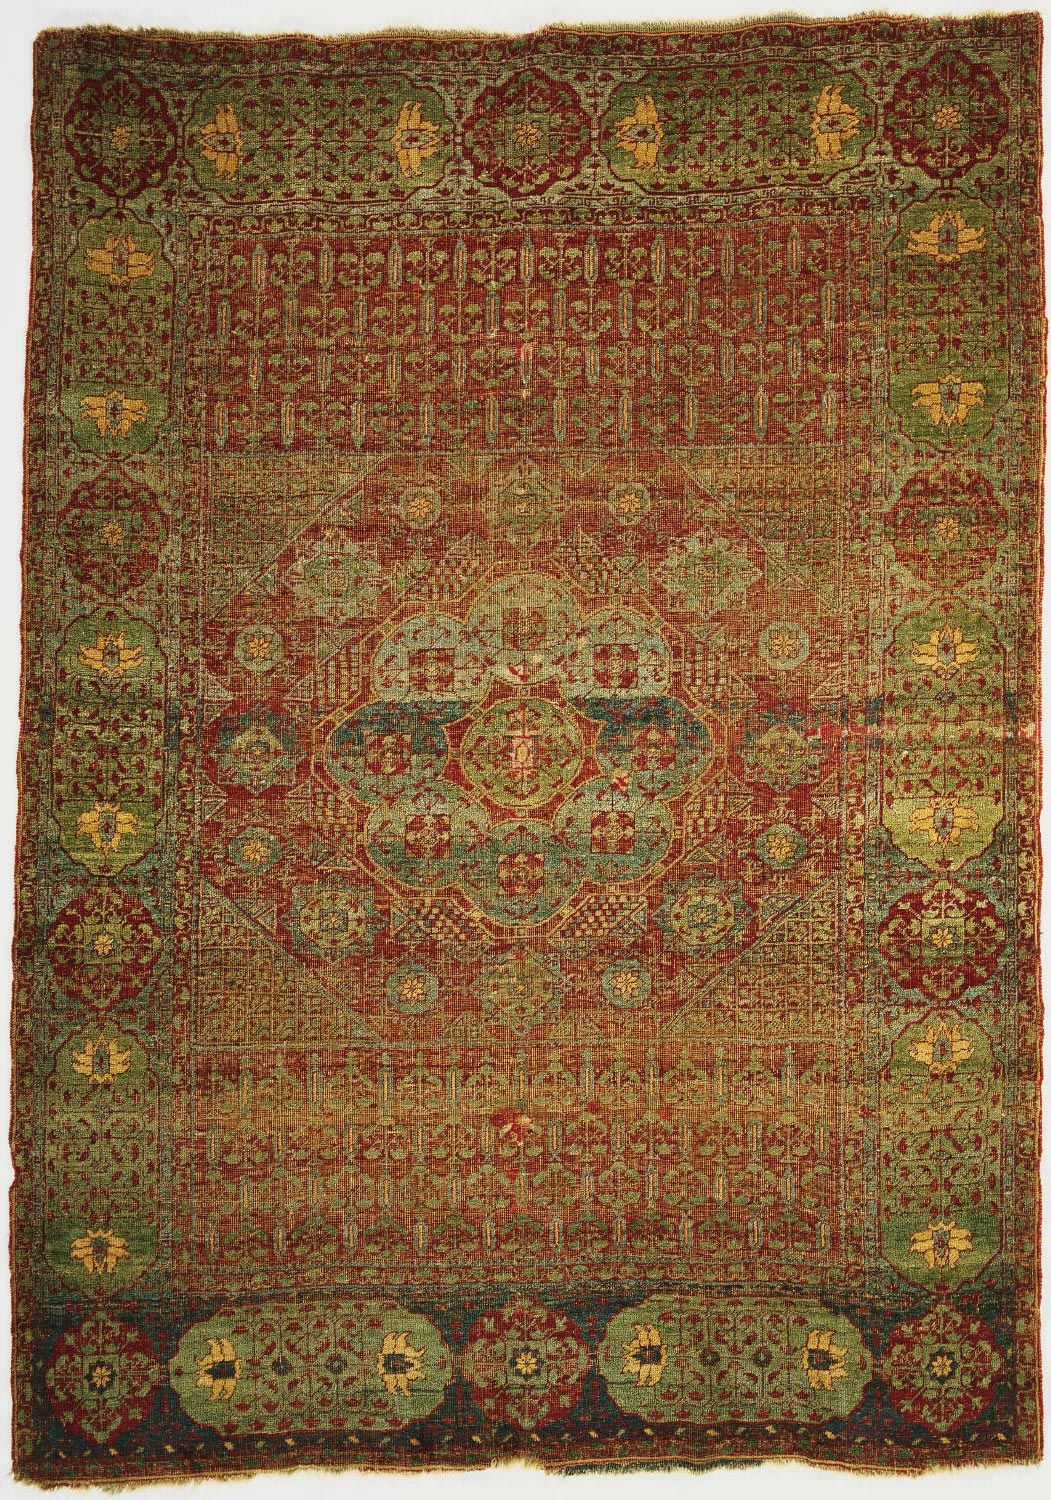 Mamluk Rug Egypt Late 15th Century Among The Egyptian